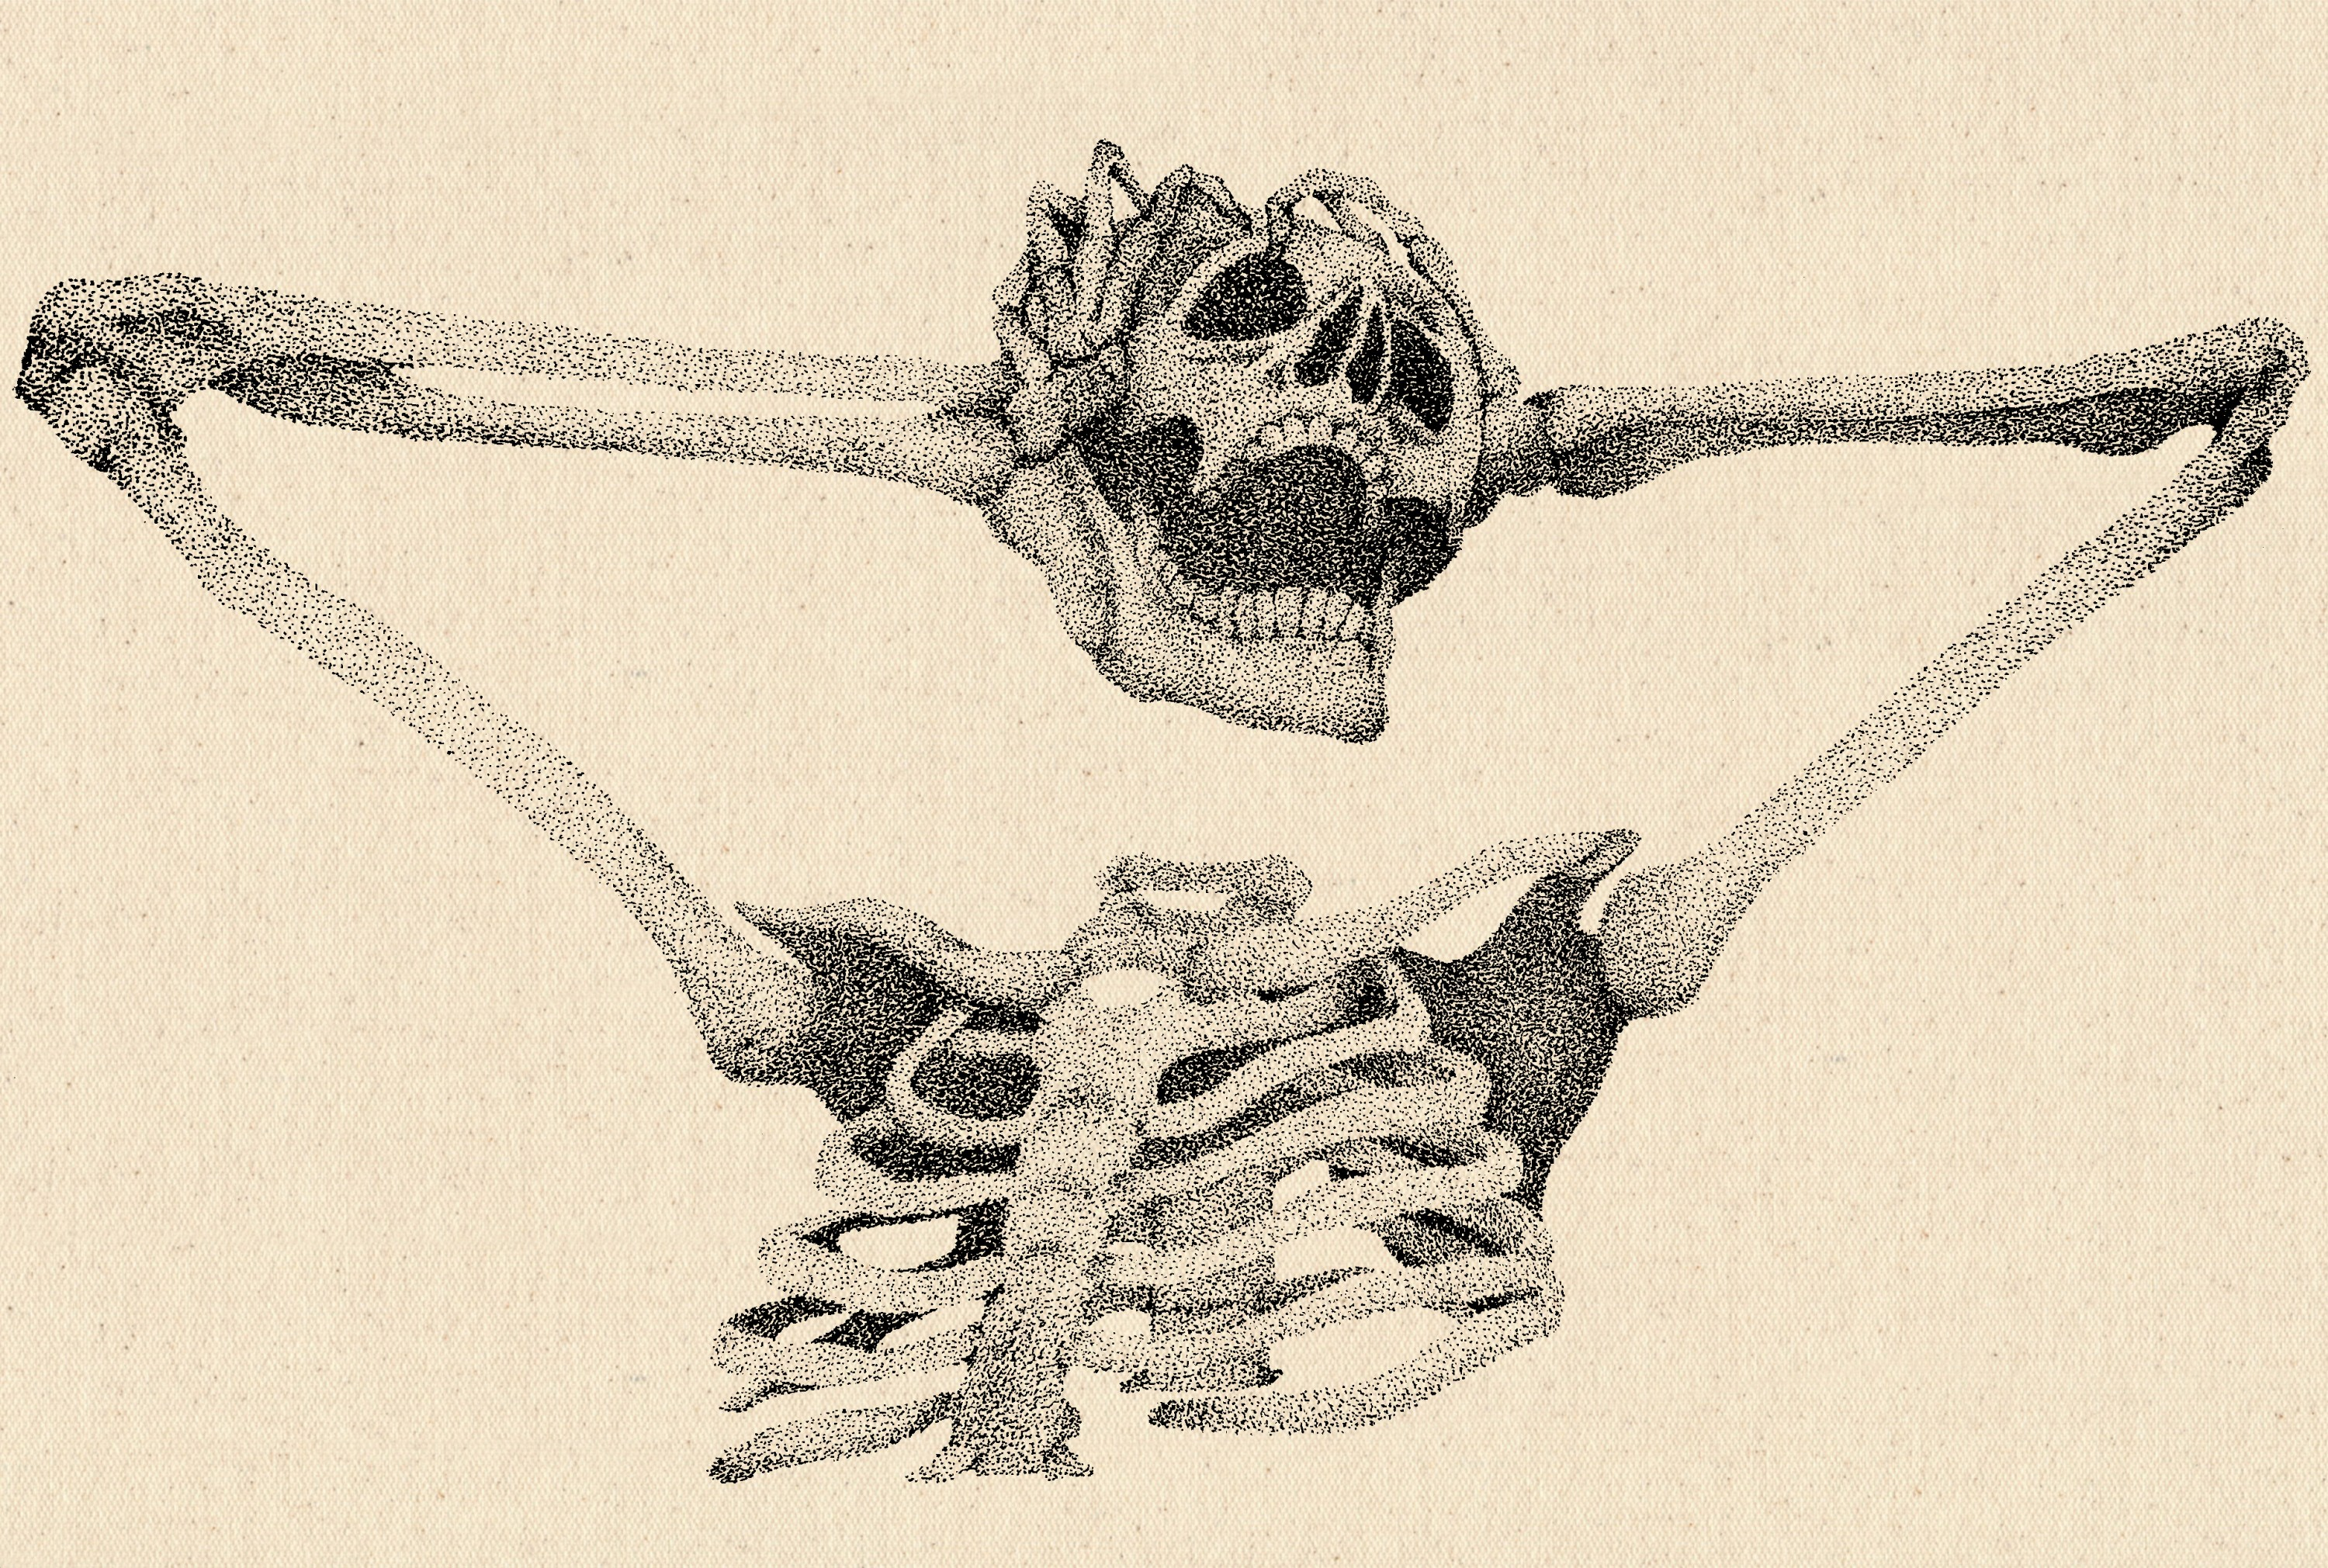 Stippled illustration of a skeleton with its head removed